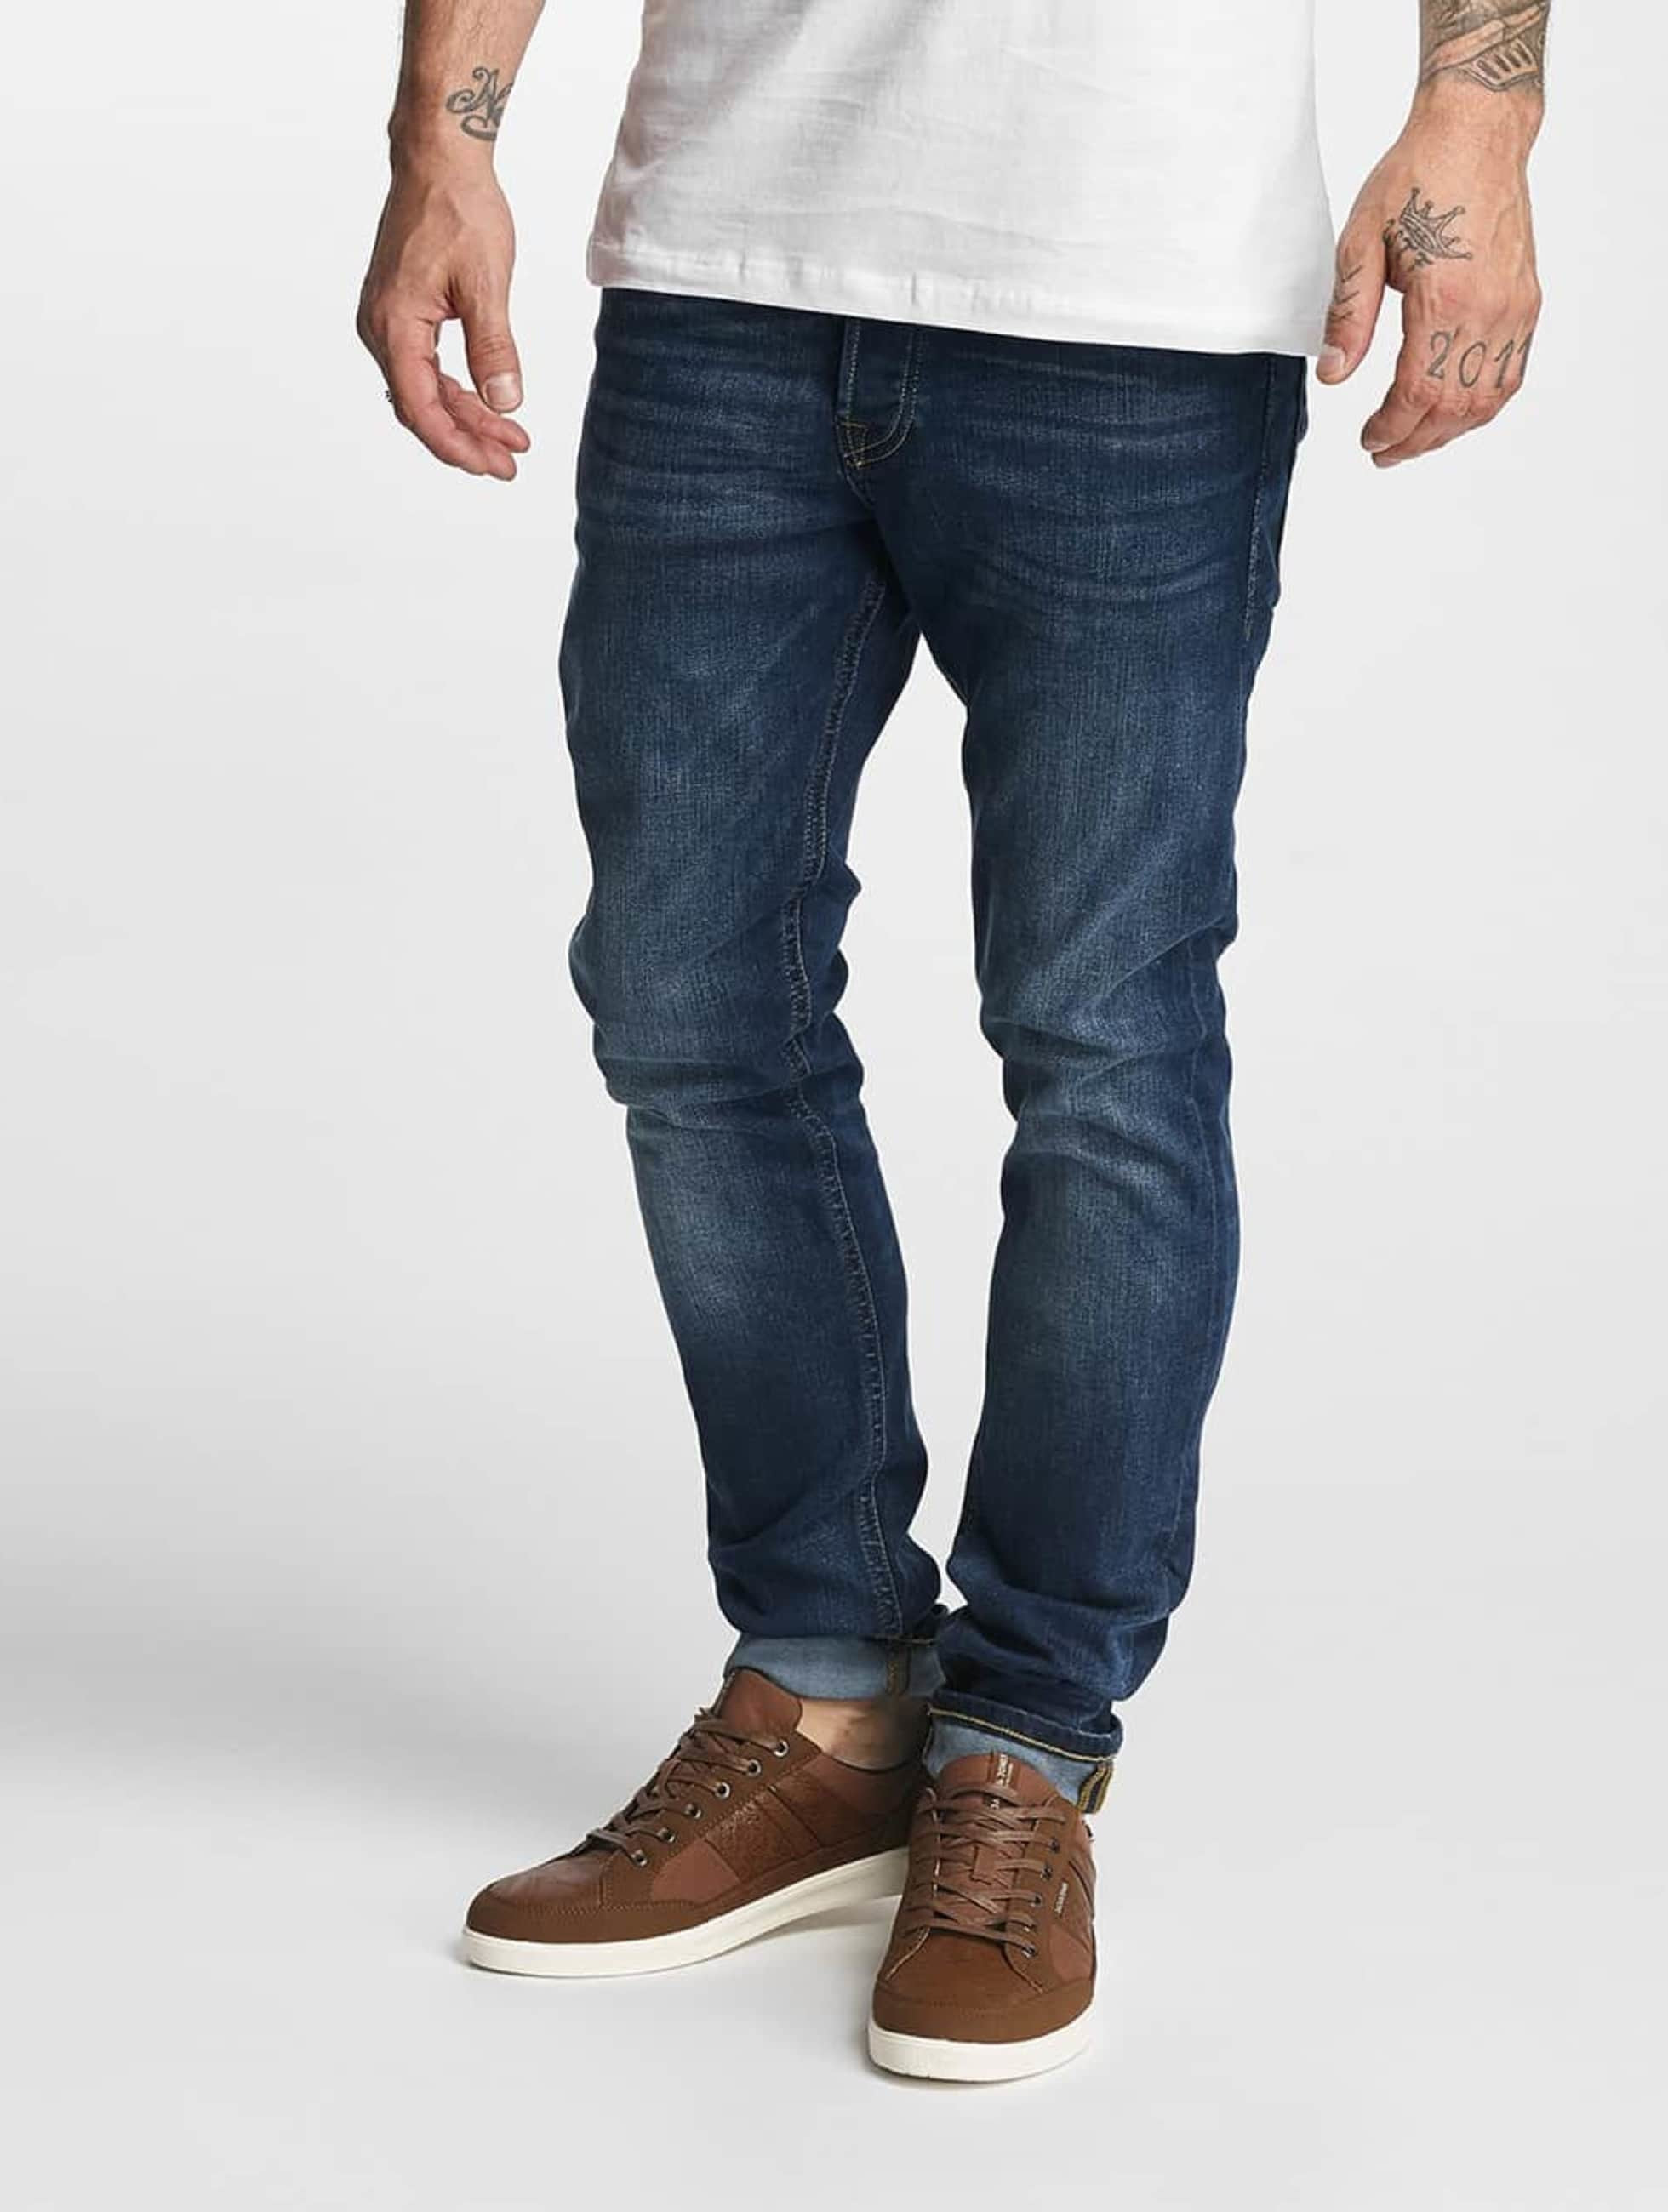 Jack & Jones Männer Skinny Jeans jjGlenn Original AM 431 in blau